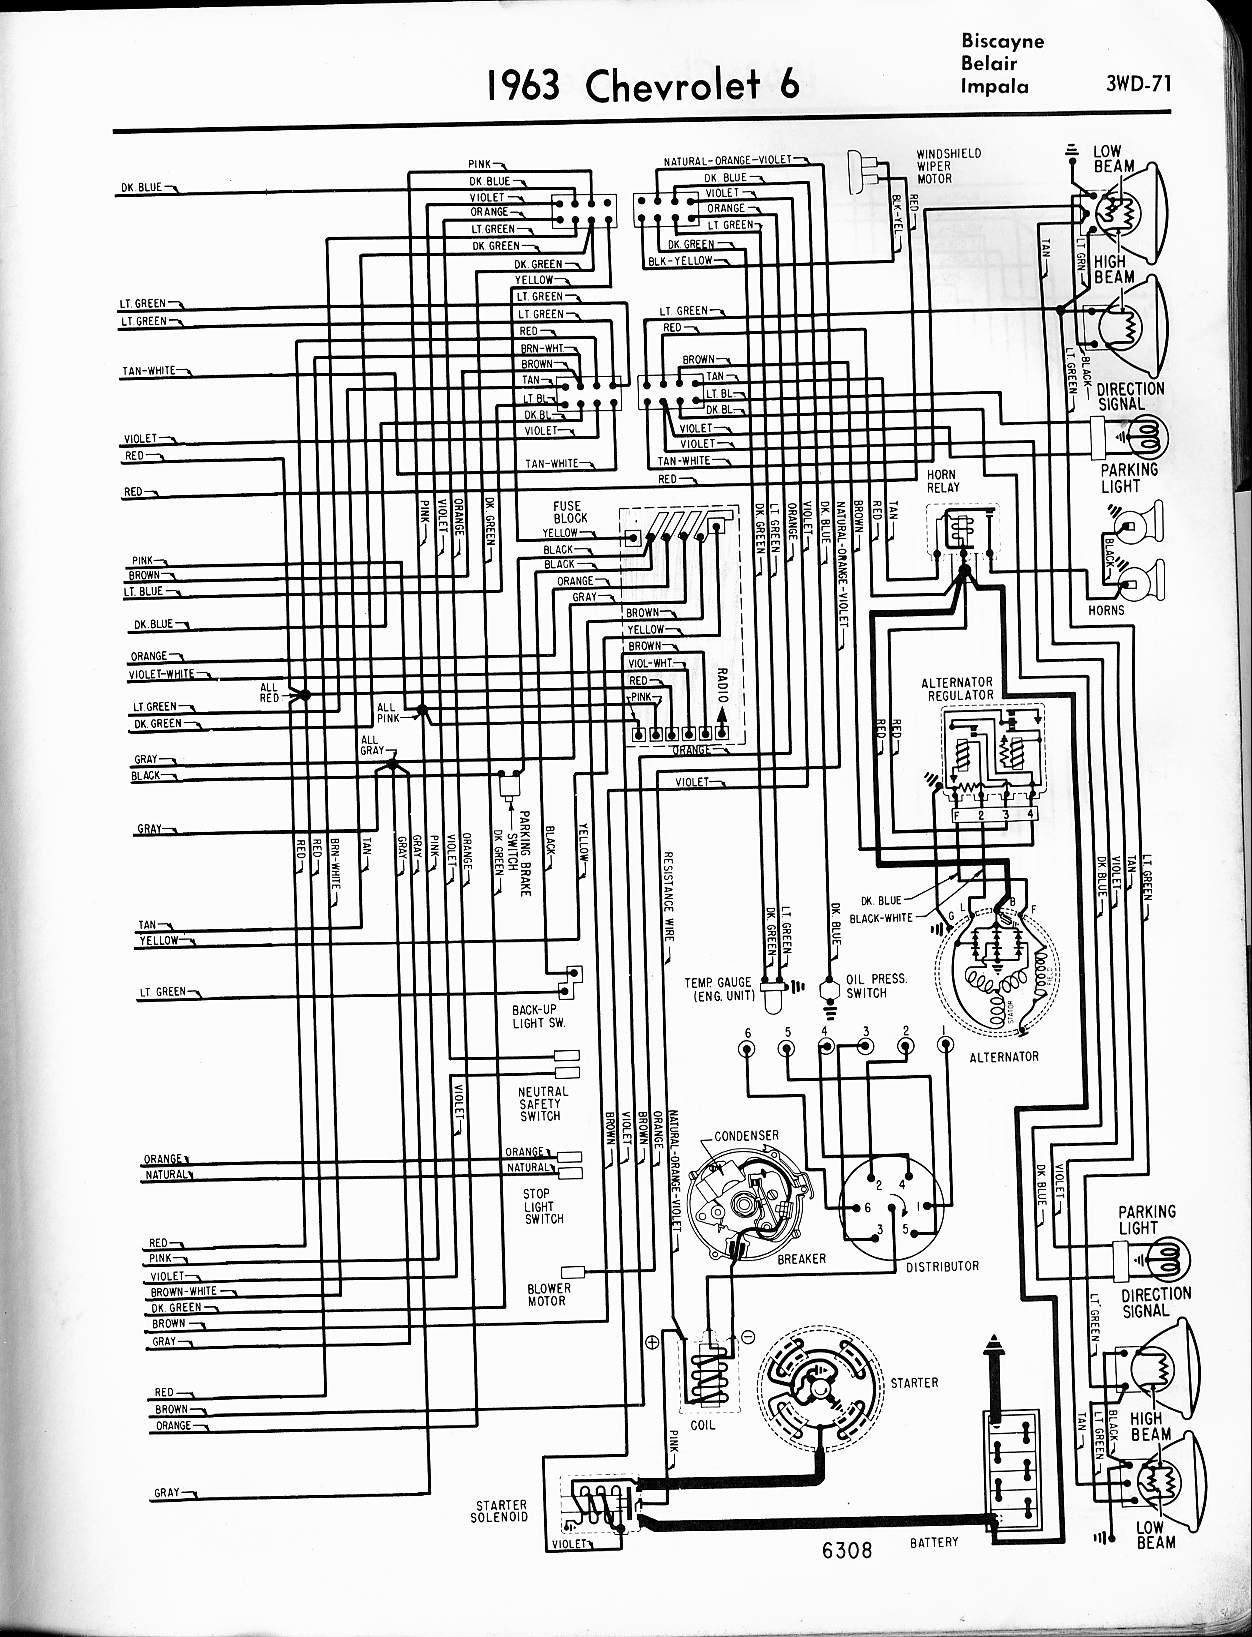 63 Impala Wiring Diagram Schema Diagrams Electrical For 1960 Chevrolet Corvair All Models 57 65 Chevy 1962